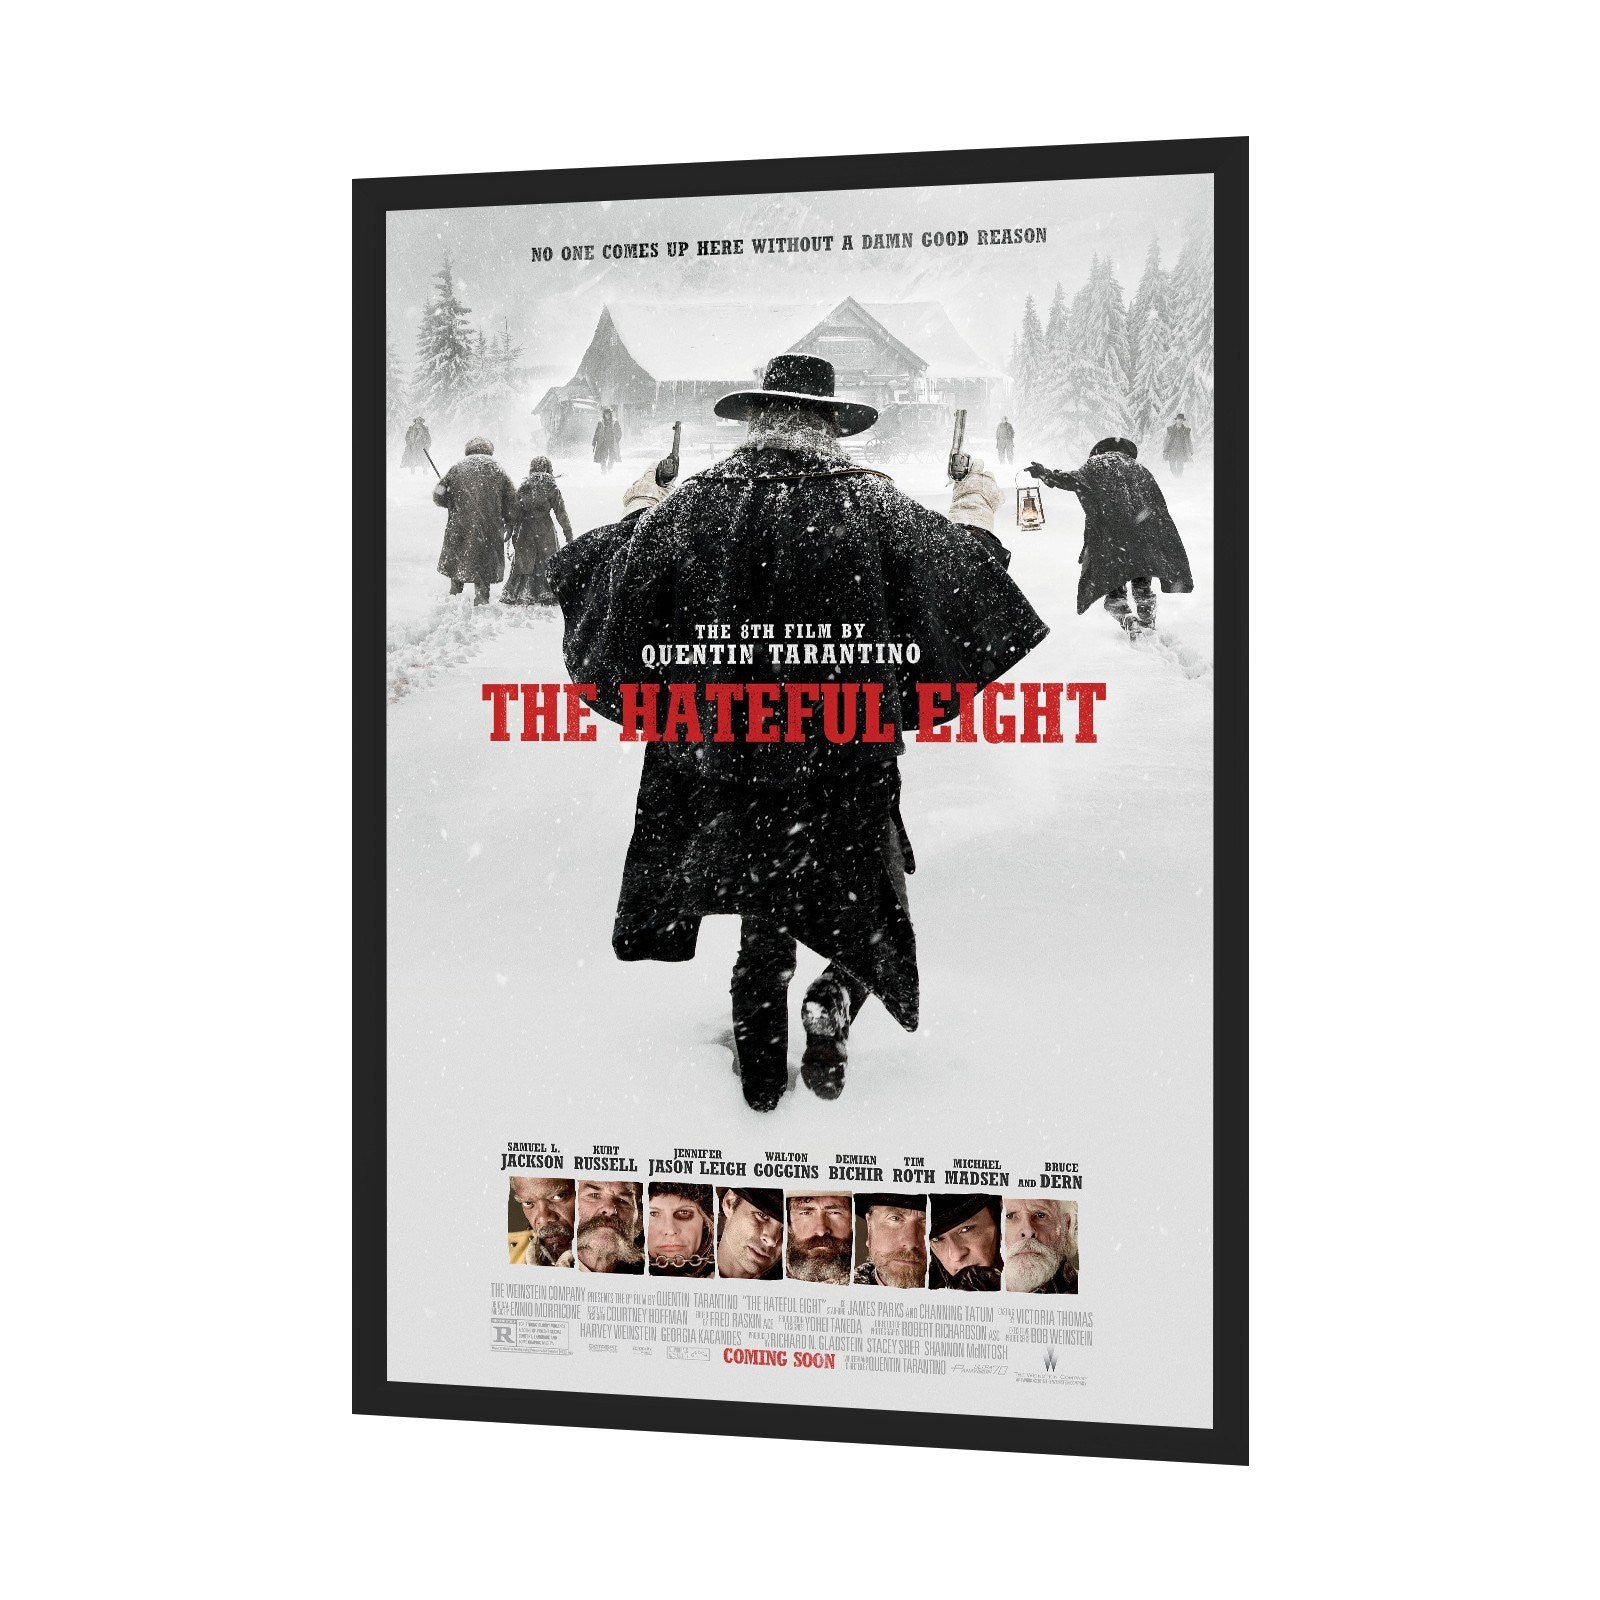 Movie Poster Snap Frames Uk his Movie Poster Font Name on